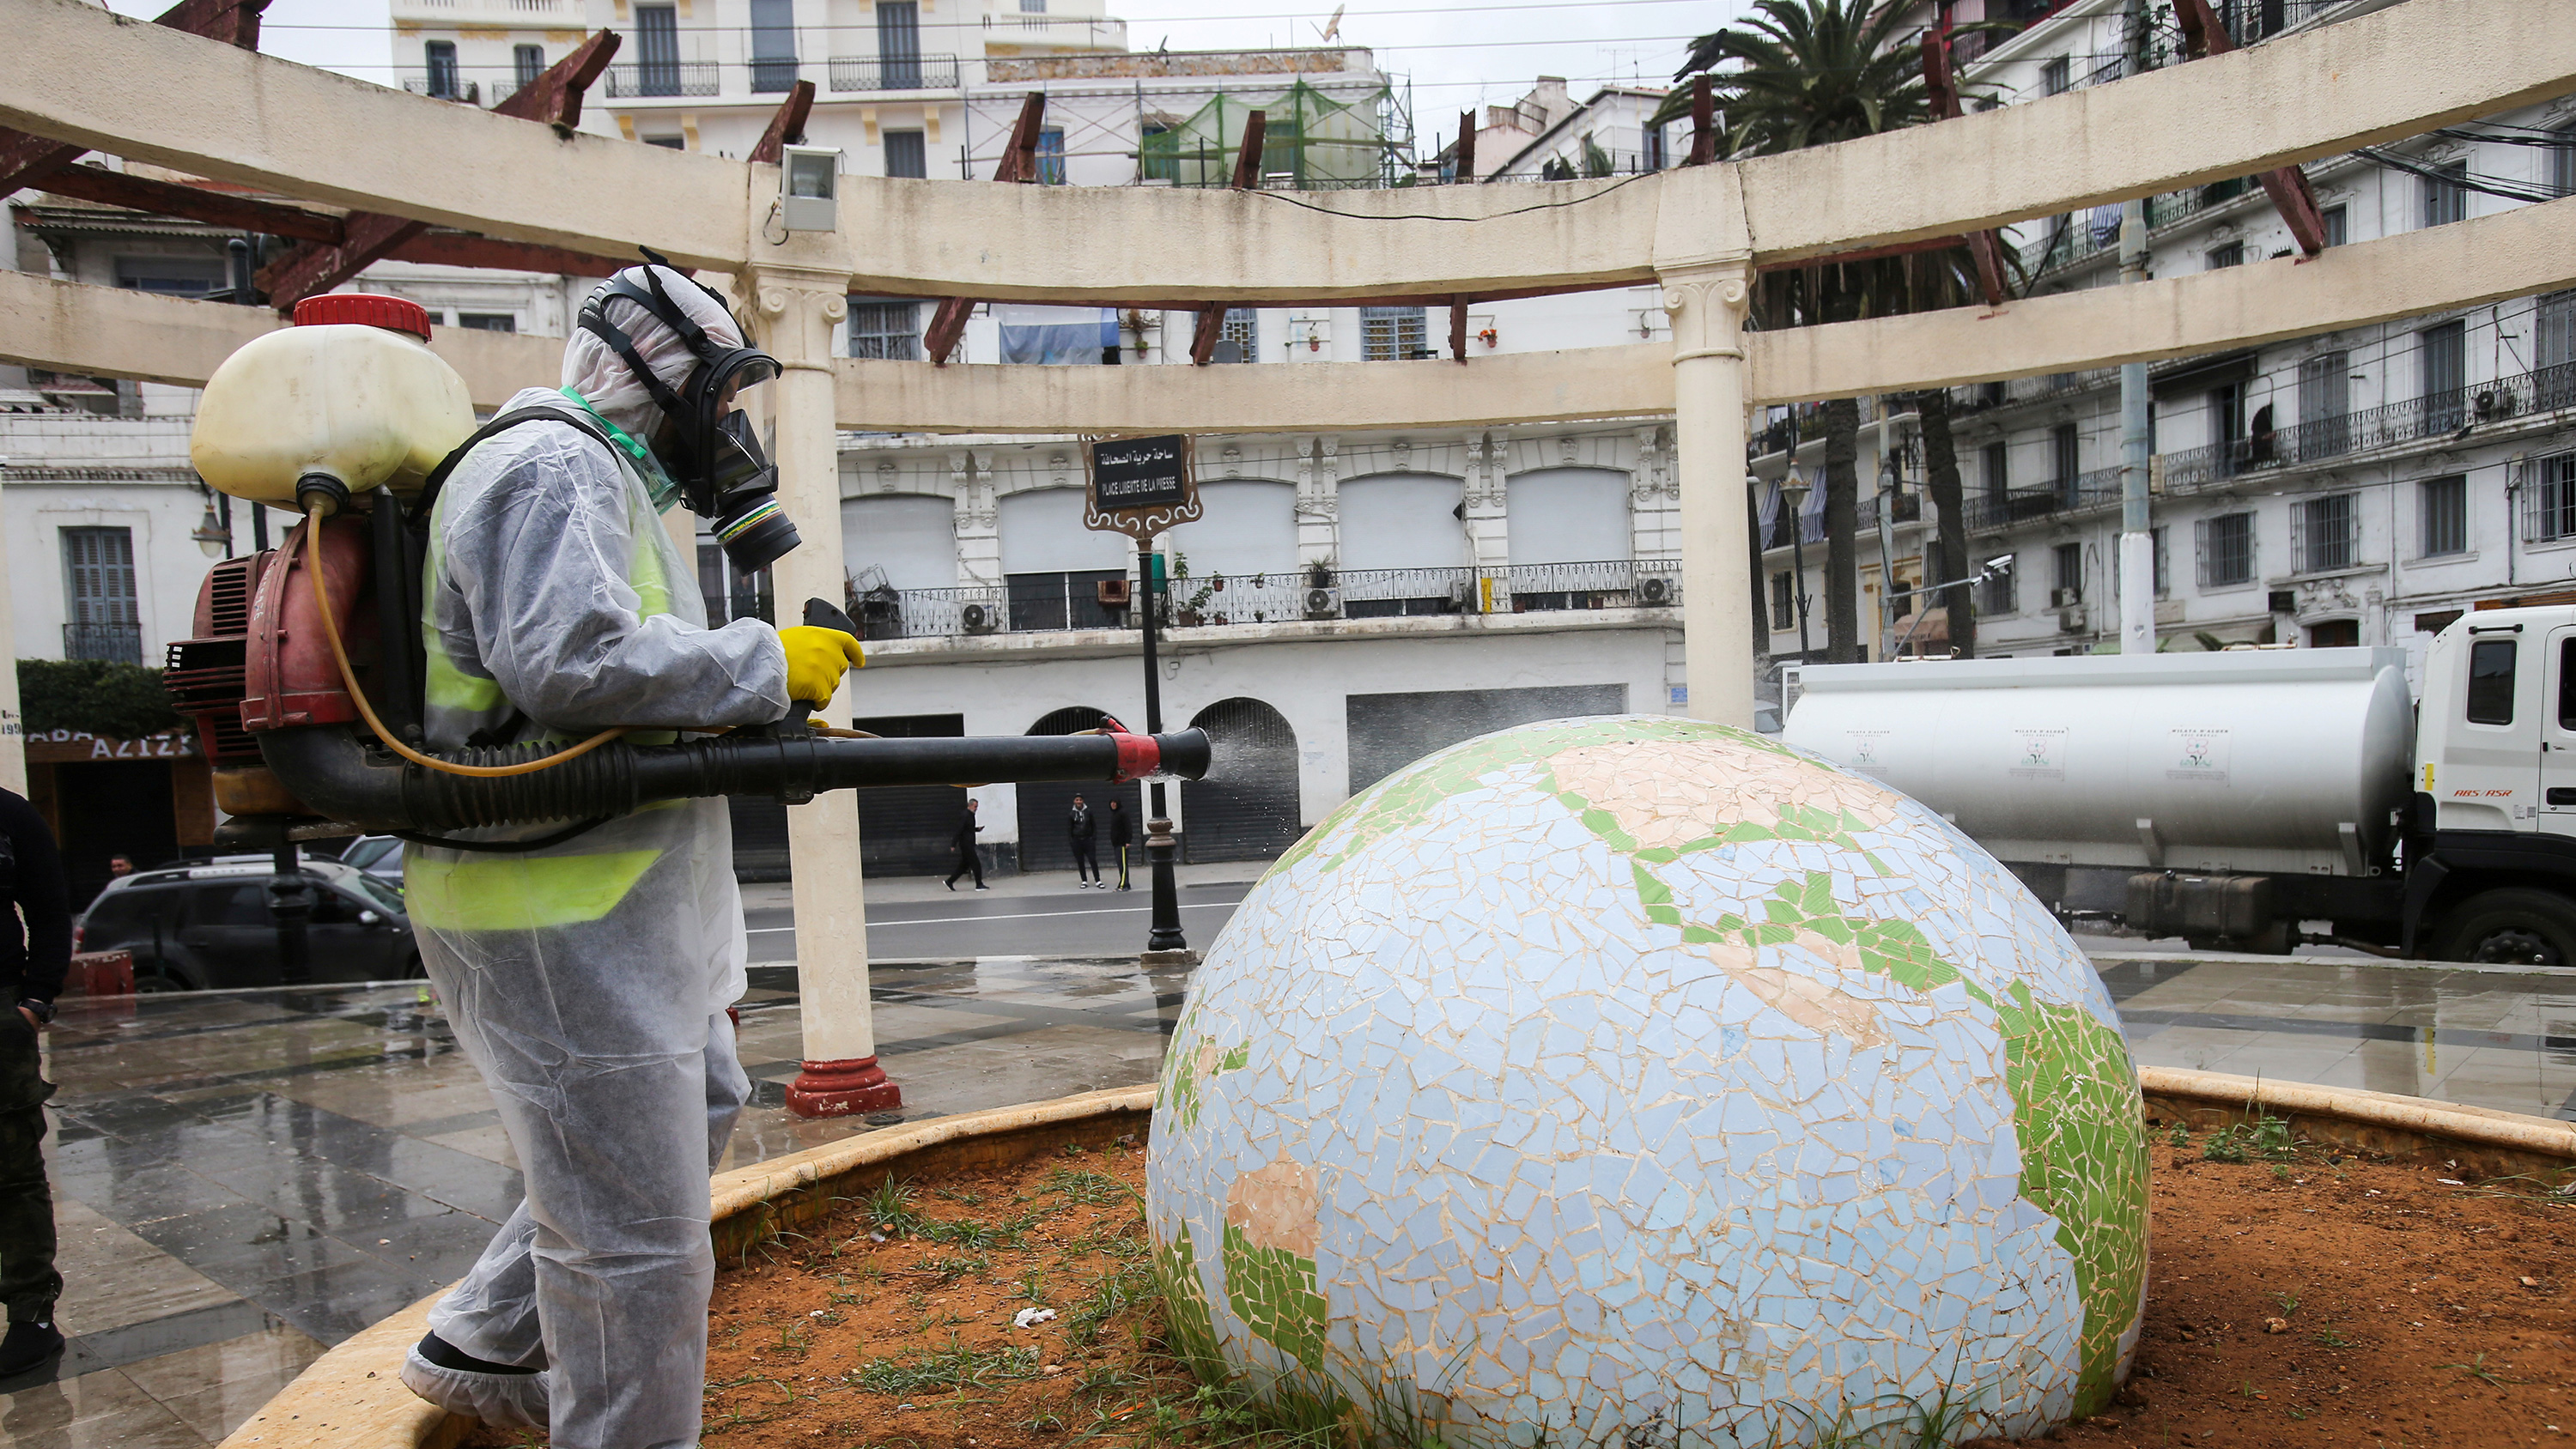 This is a bizarre photo showing the worker in a protective space suit spraying a large, fancy globe sculpture in the center of an open-air atrium.